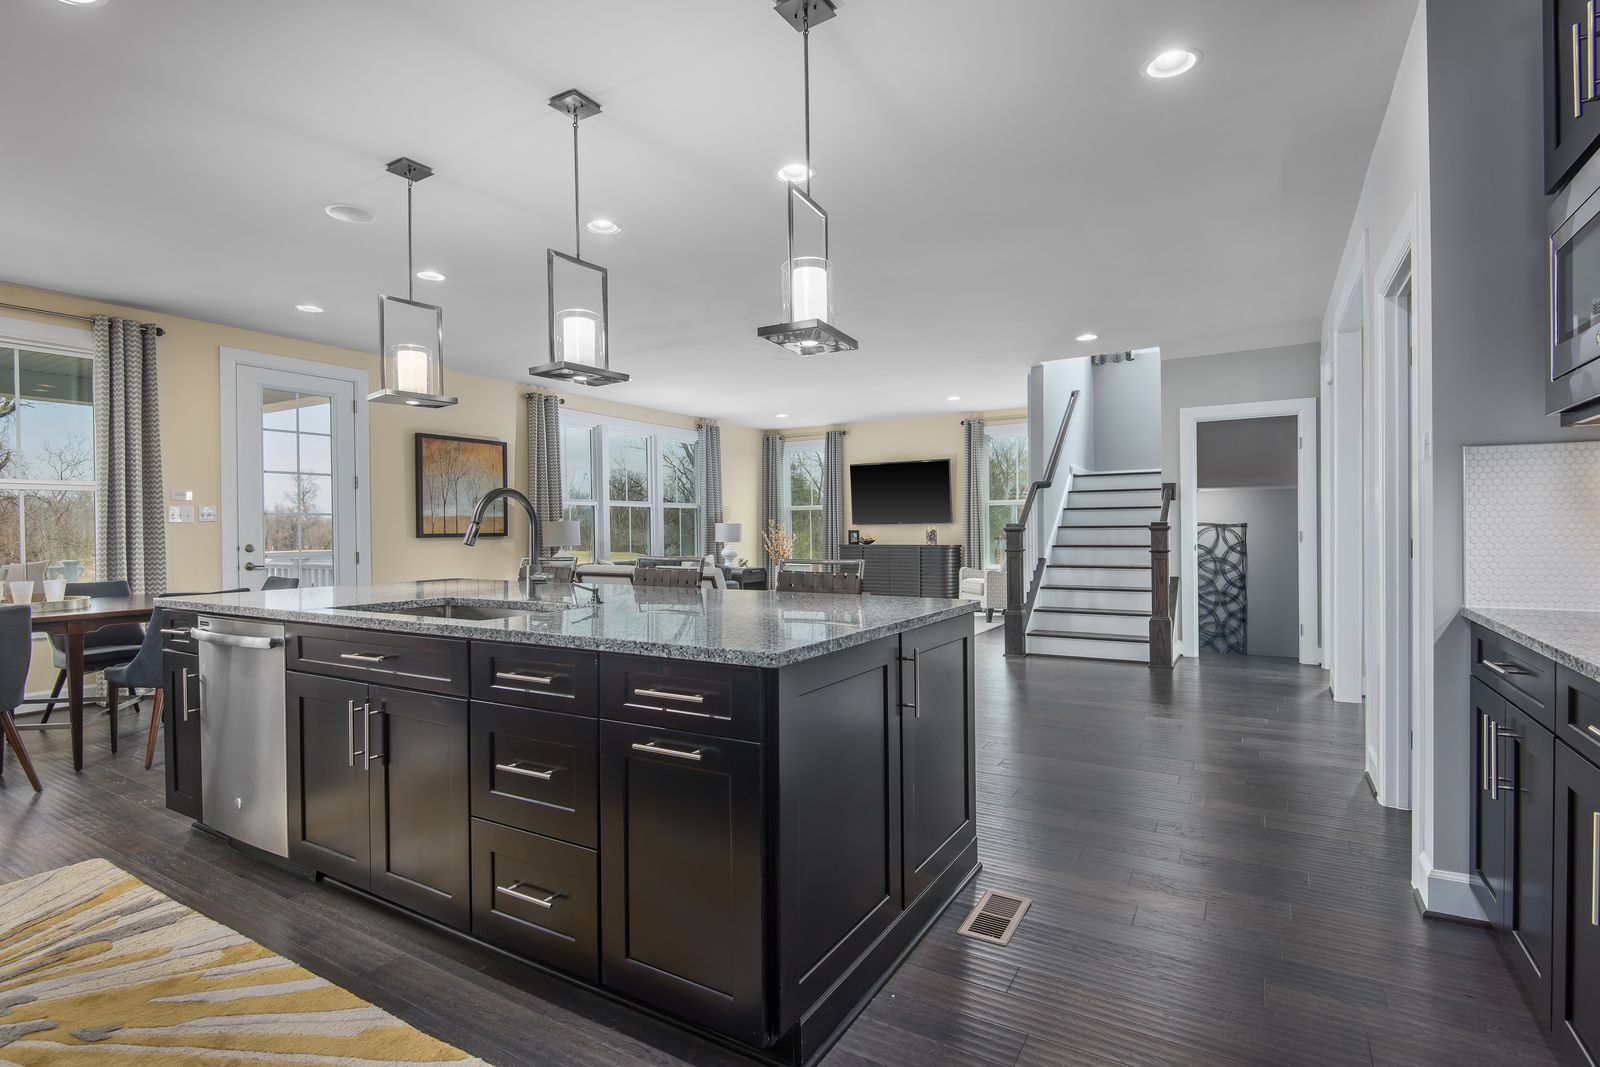 Kitchen featured in the Longwood By NVHomes in Baltimore, MD